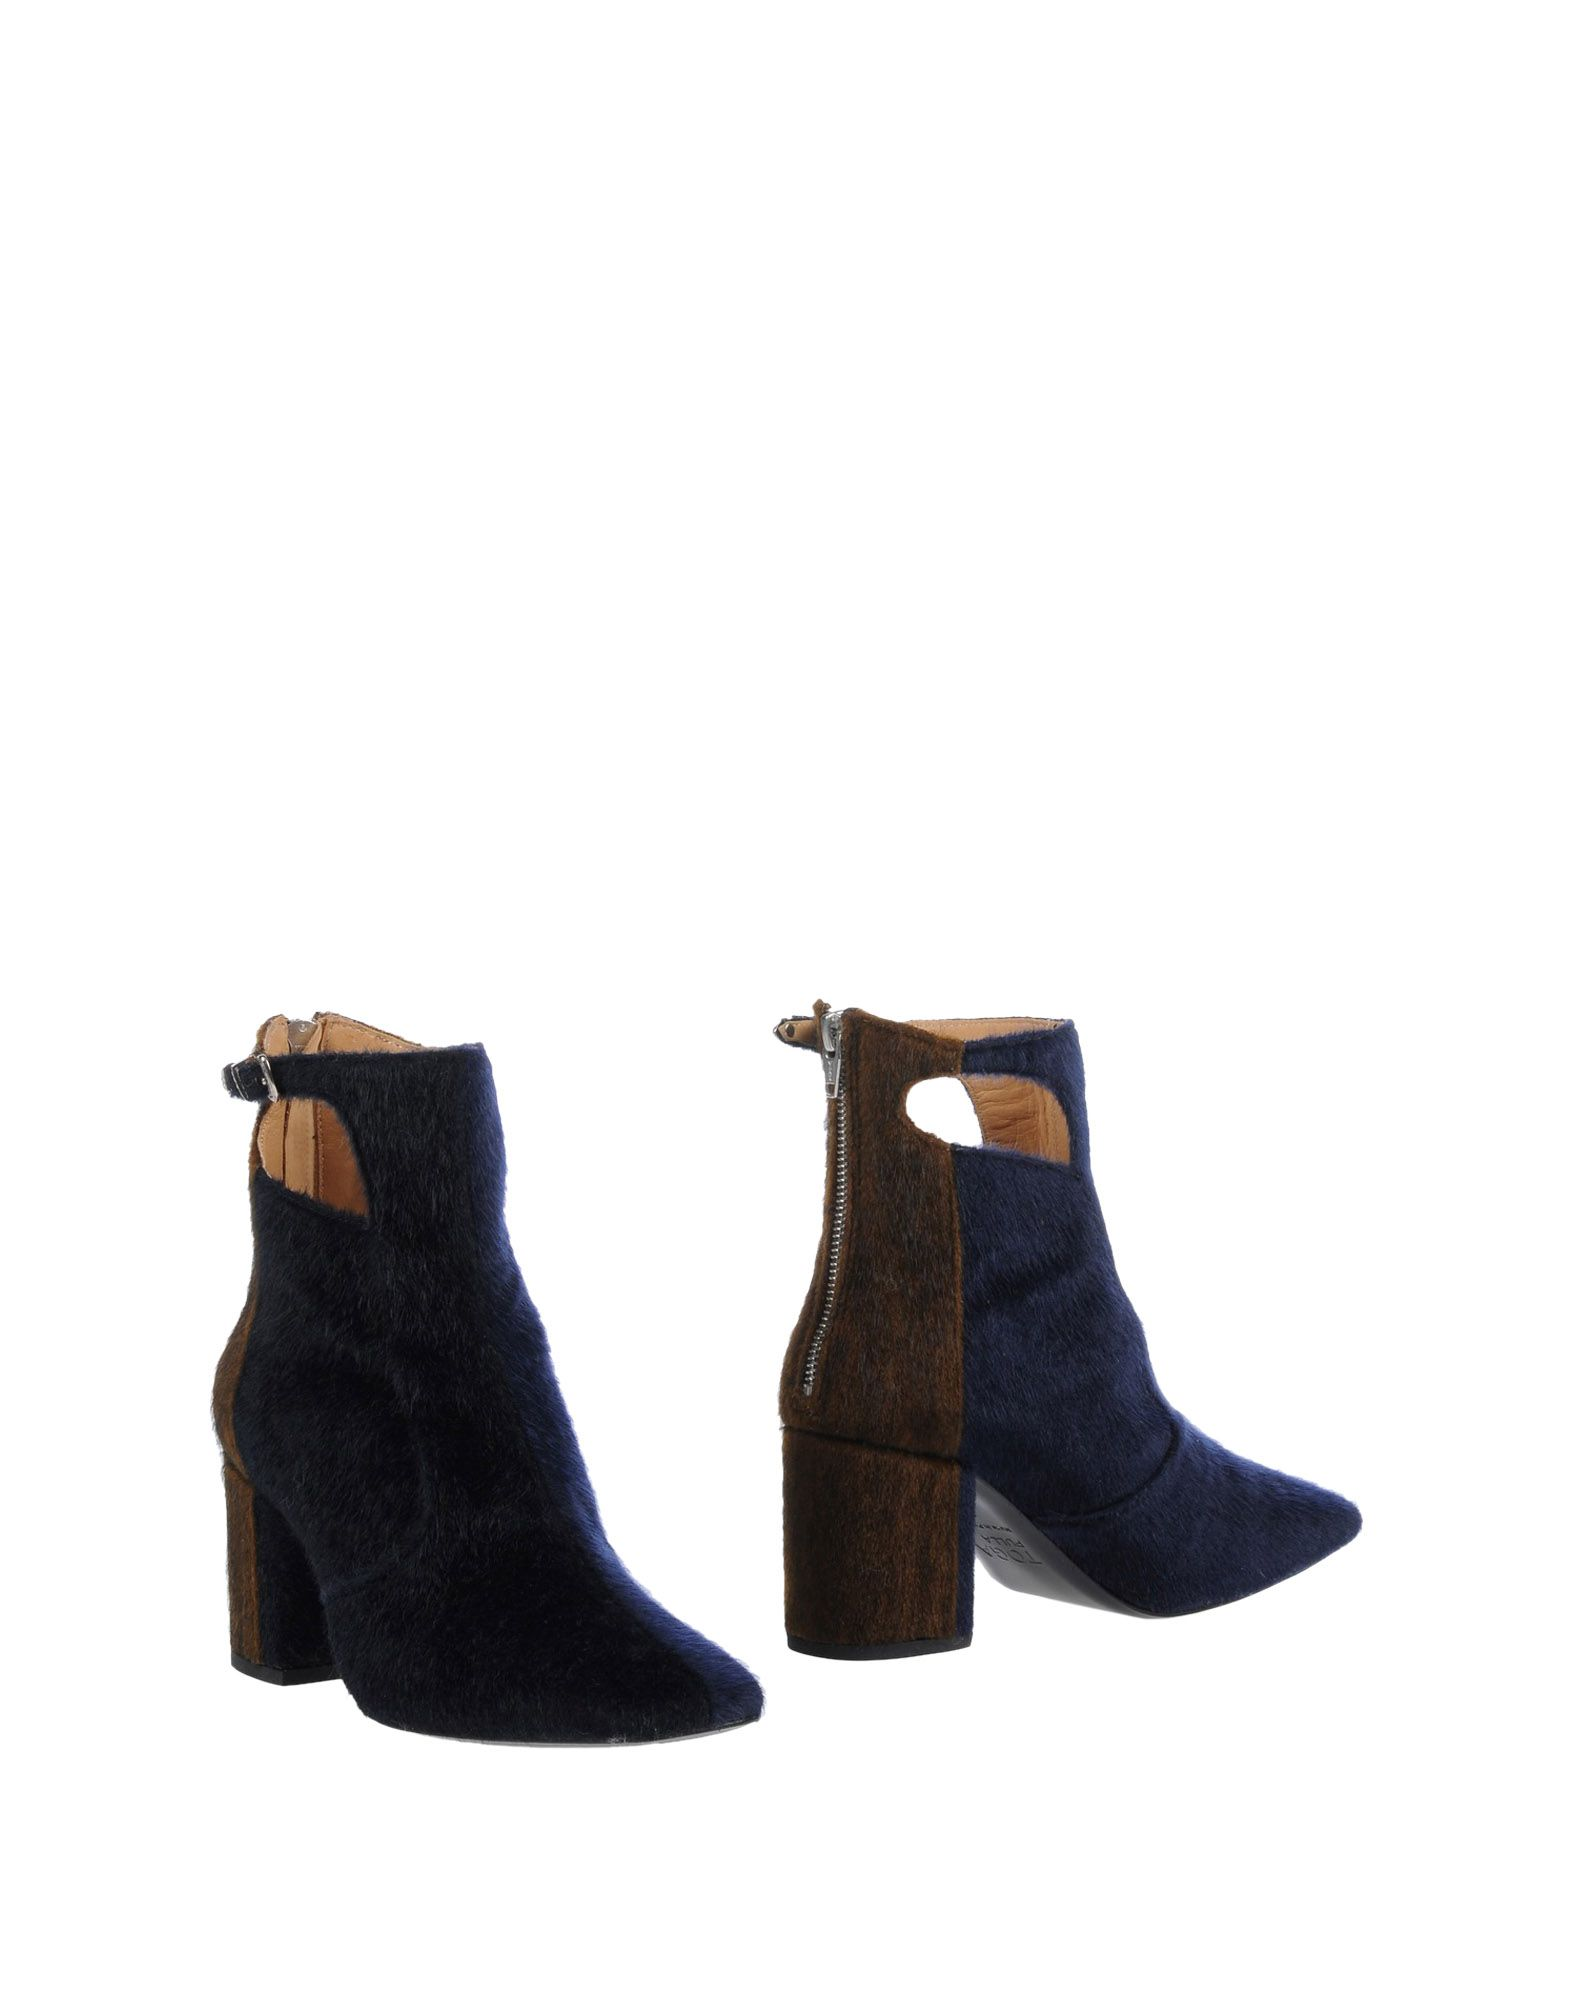 Toga Pulla Ankle Boot - Women Women Women Toga Pulla Ankle Boots online on  United Kingdom - 11452583FF c545ef